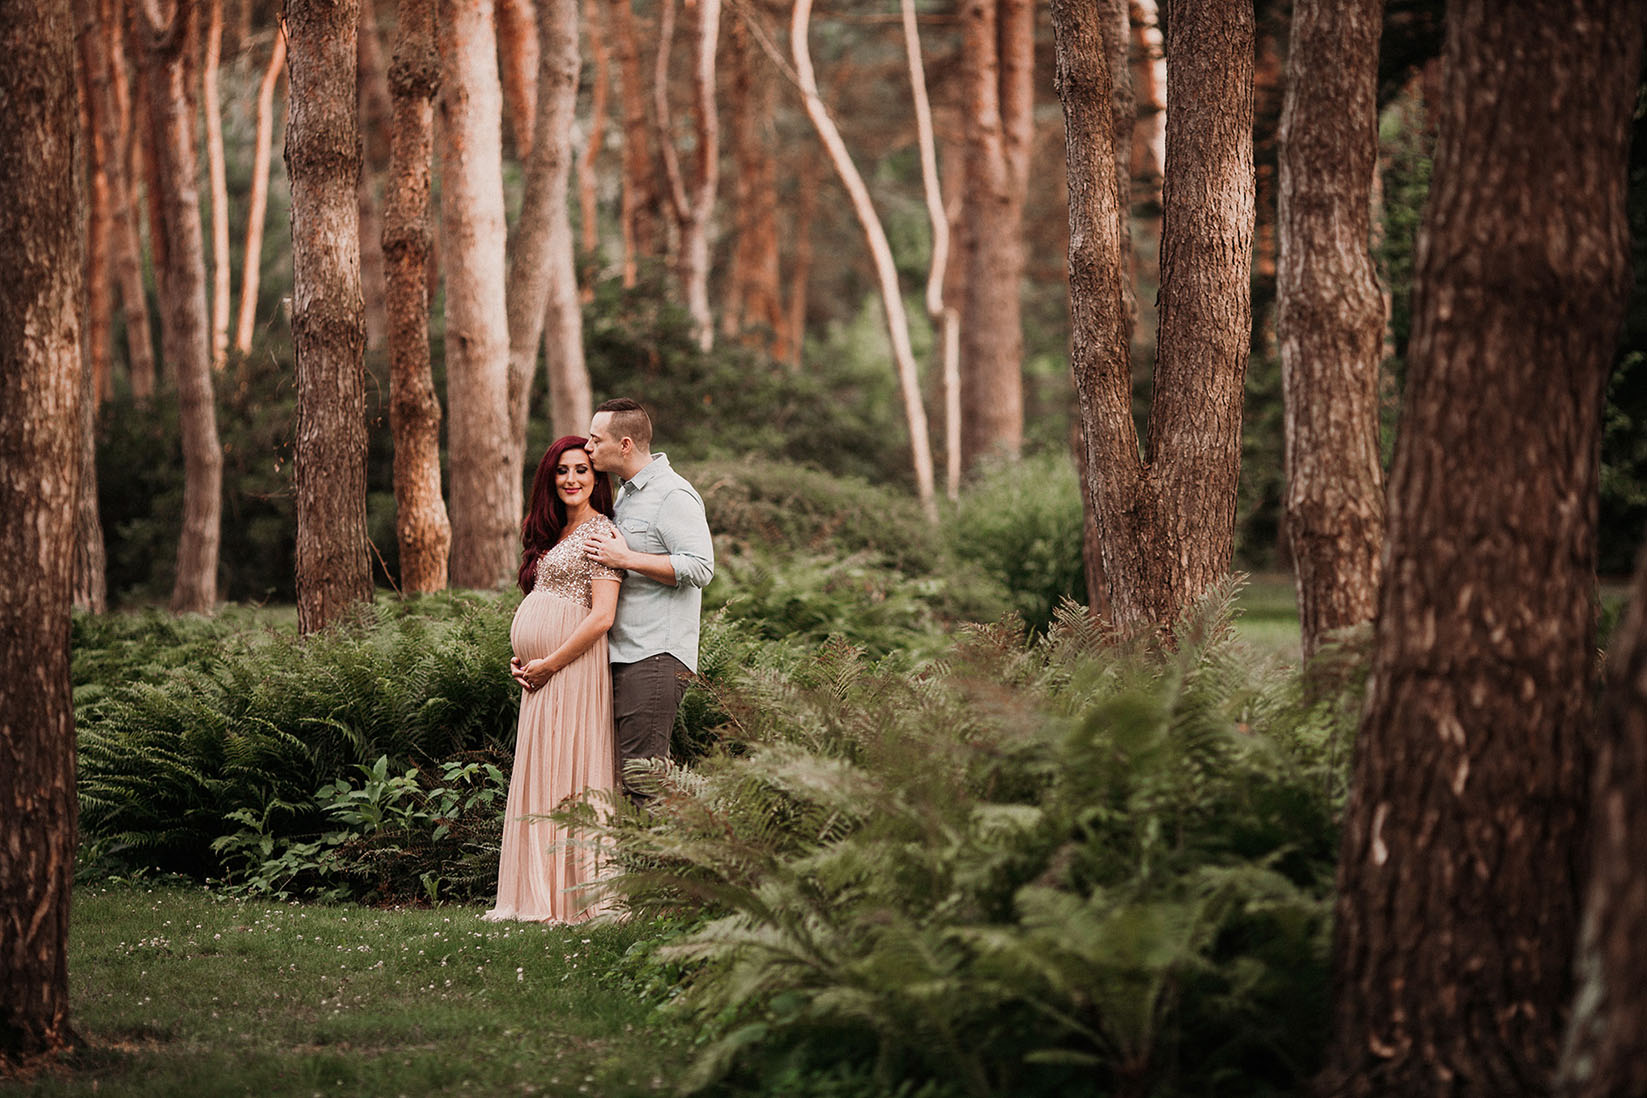 Outdoor maternity session held in forest in Cleveland Ohio by Maternity photographer Chelsey Hill Photography